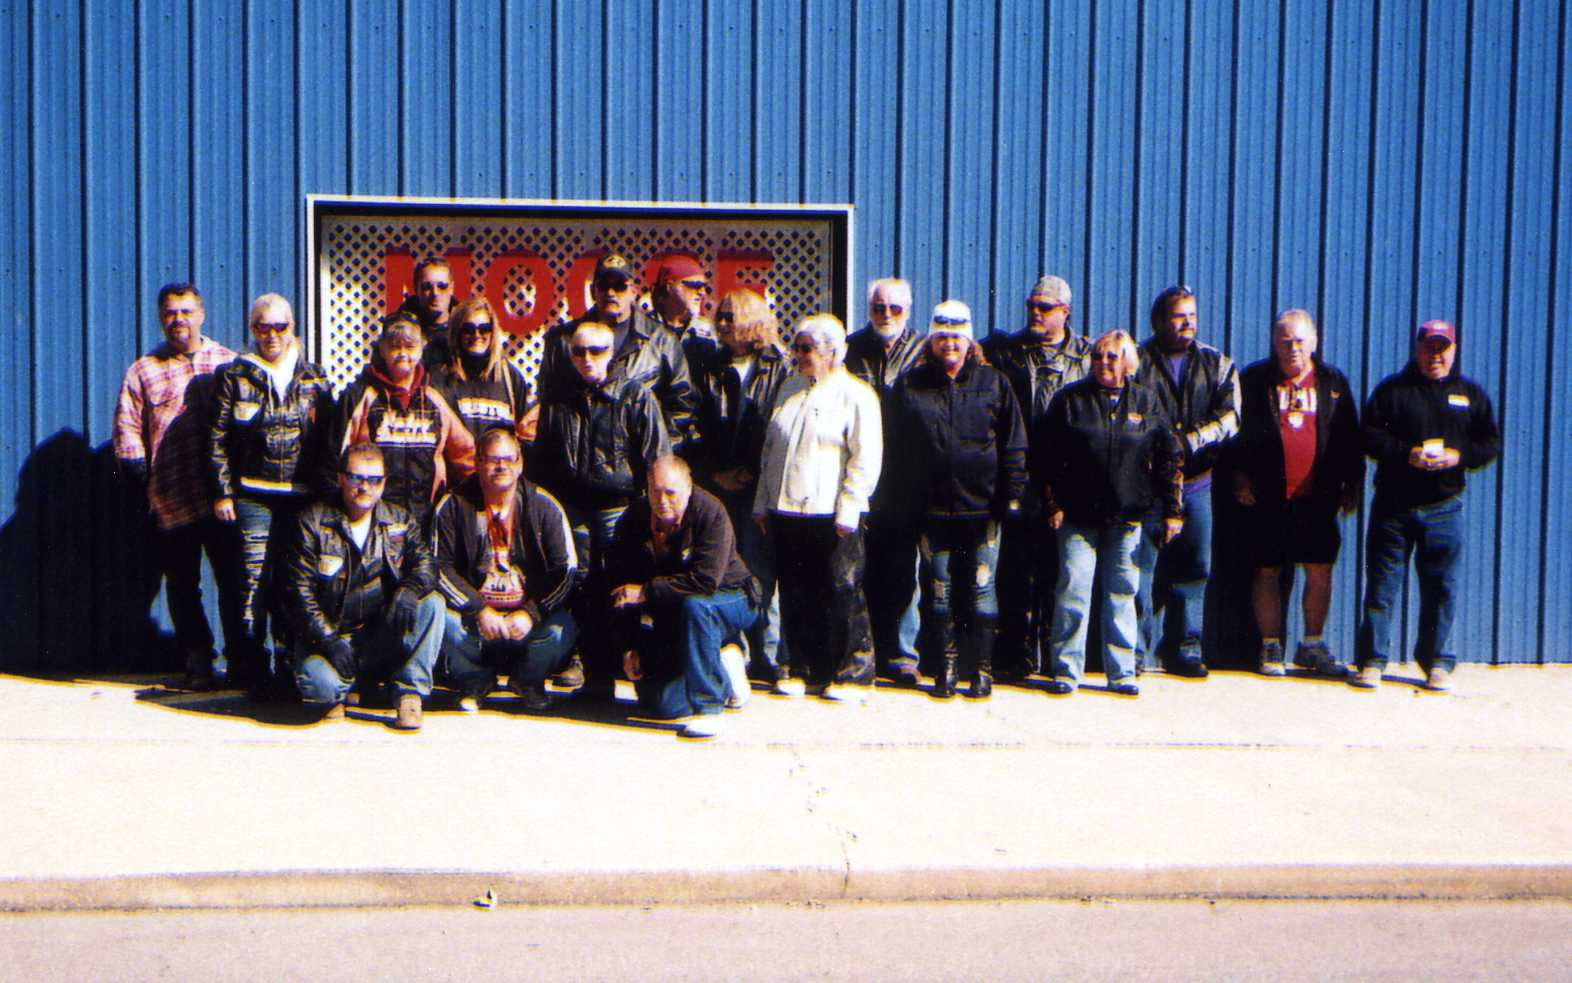 Picture of all the participants in the 2012 rally.